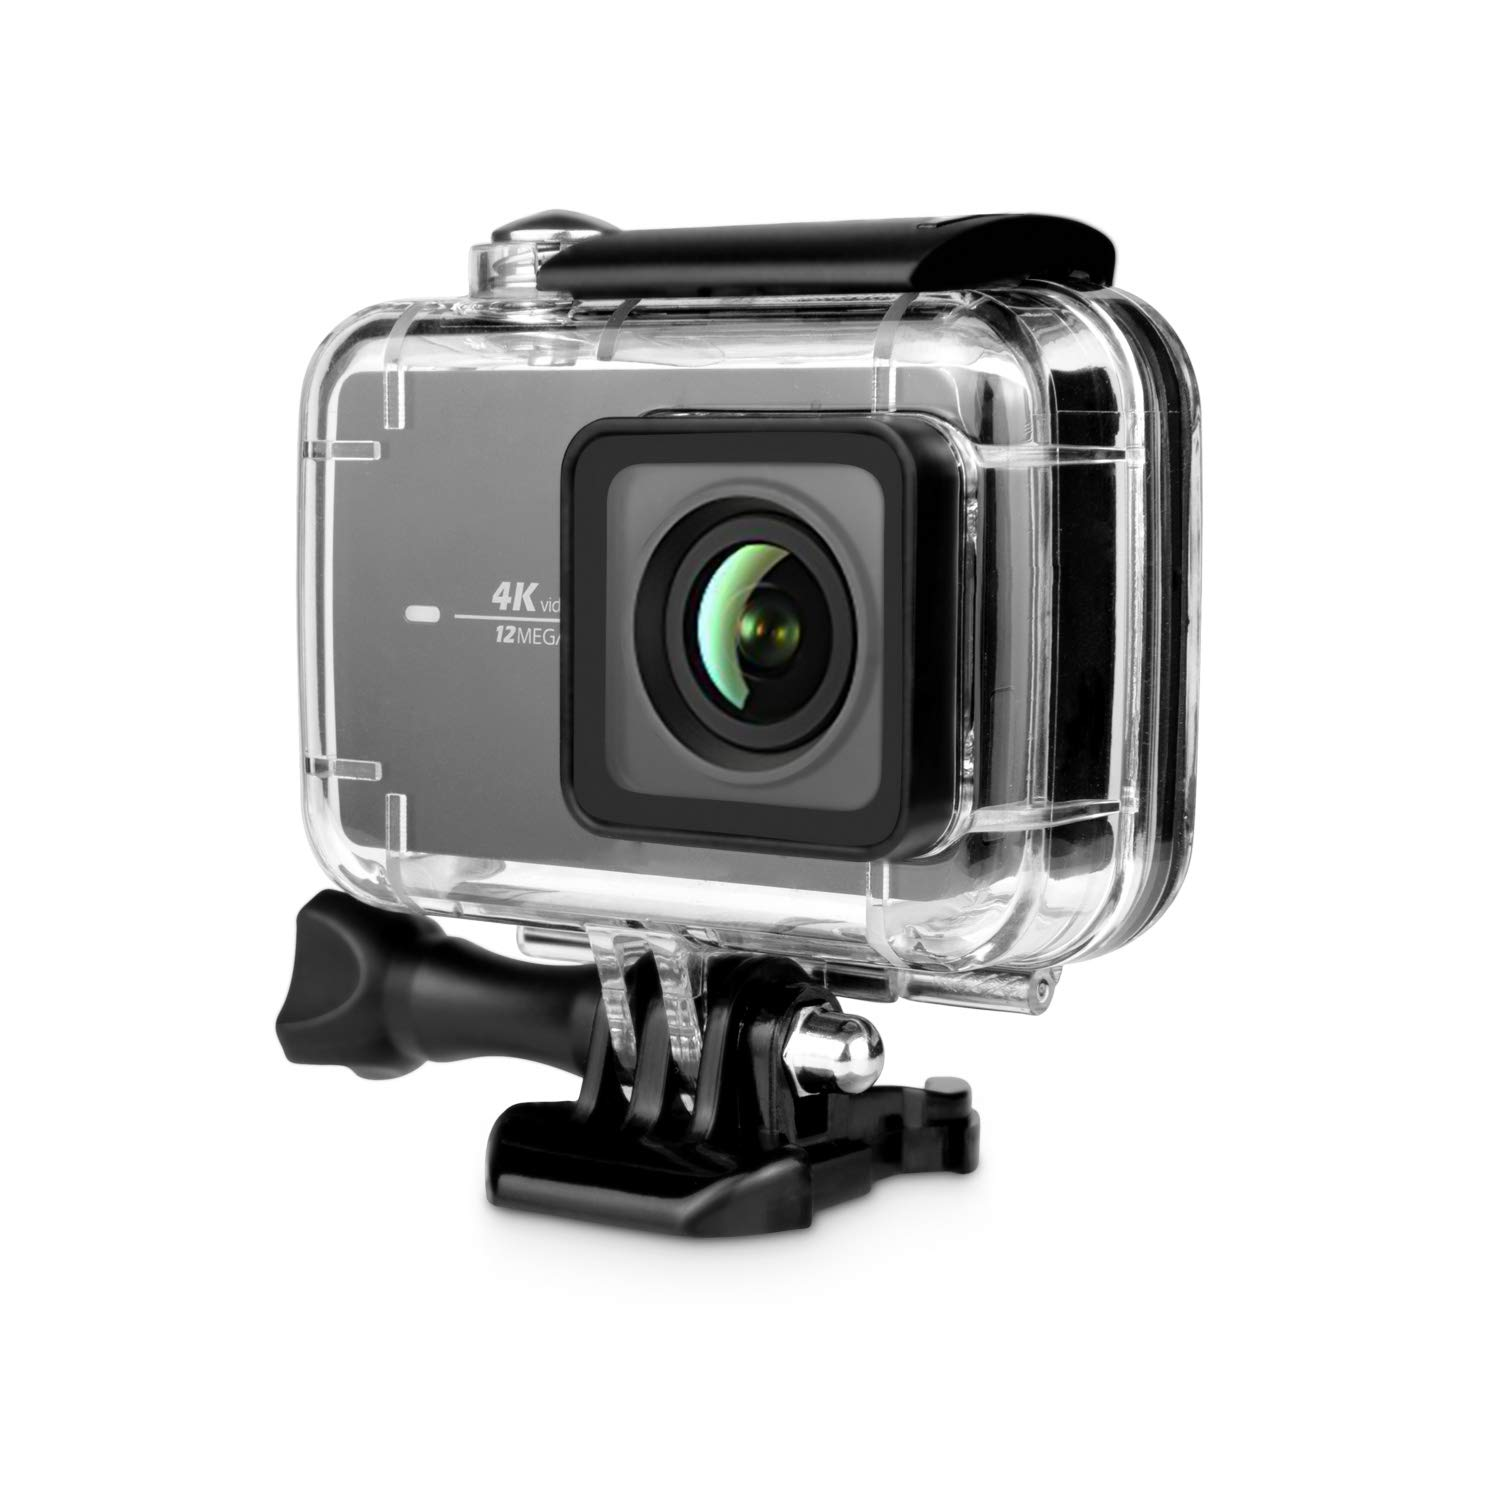 Rhodesy Waterproof Protective Case with Quick Release Buckle for Xiaomi Yi 4K/ 4K+/ Yi Lite/ Yi Discovery 4K Action Camera, Black